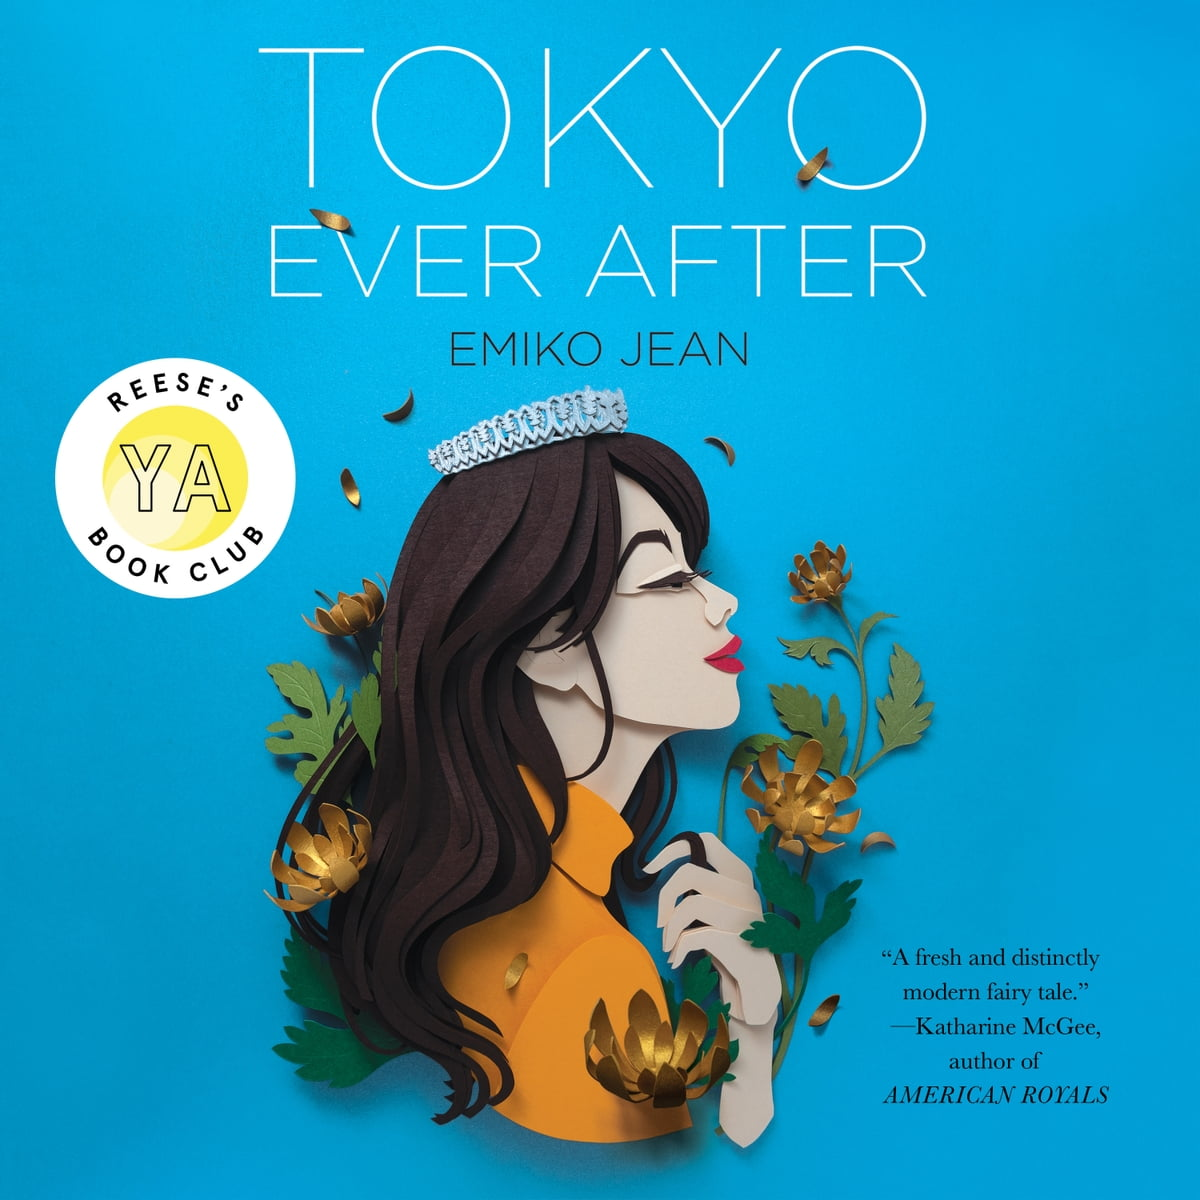 Tokyo Ever After Audiobook by Emiko Jean - 9781250804167